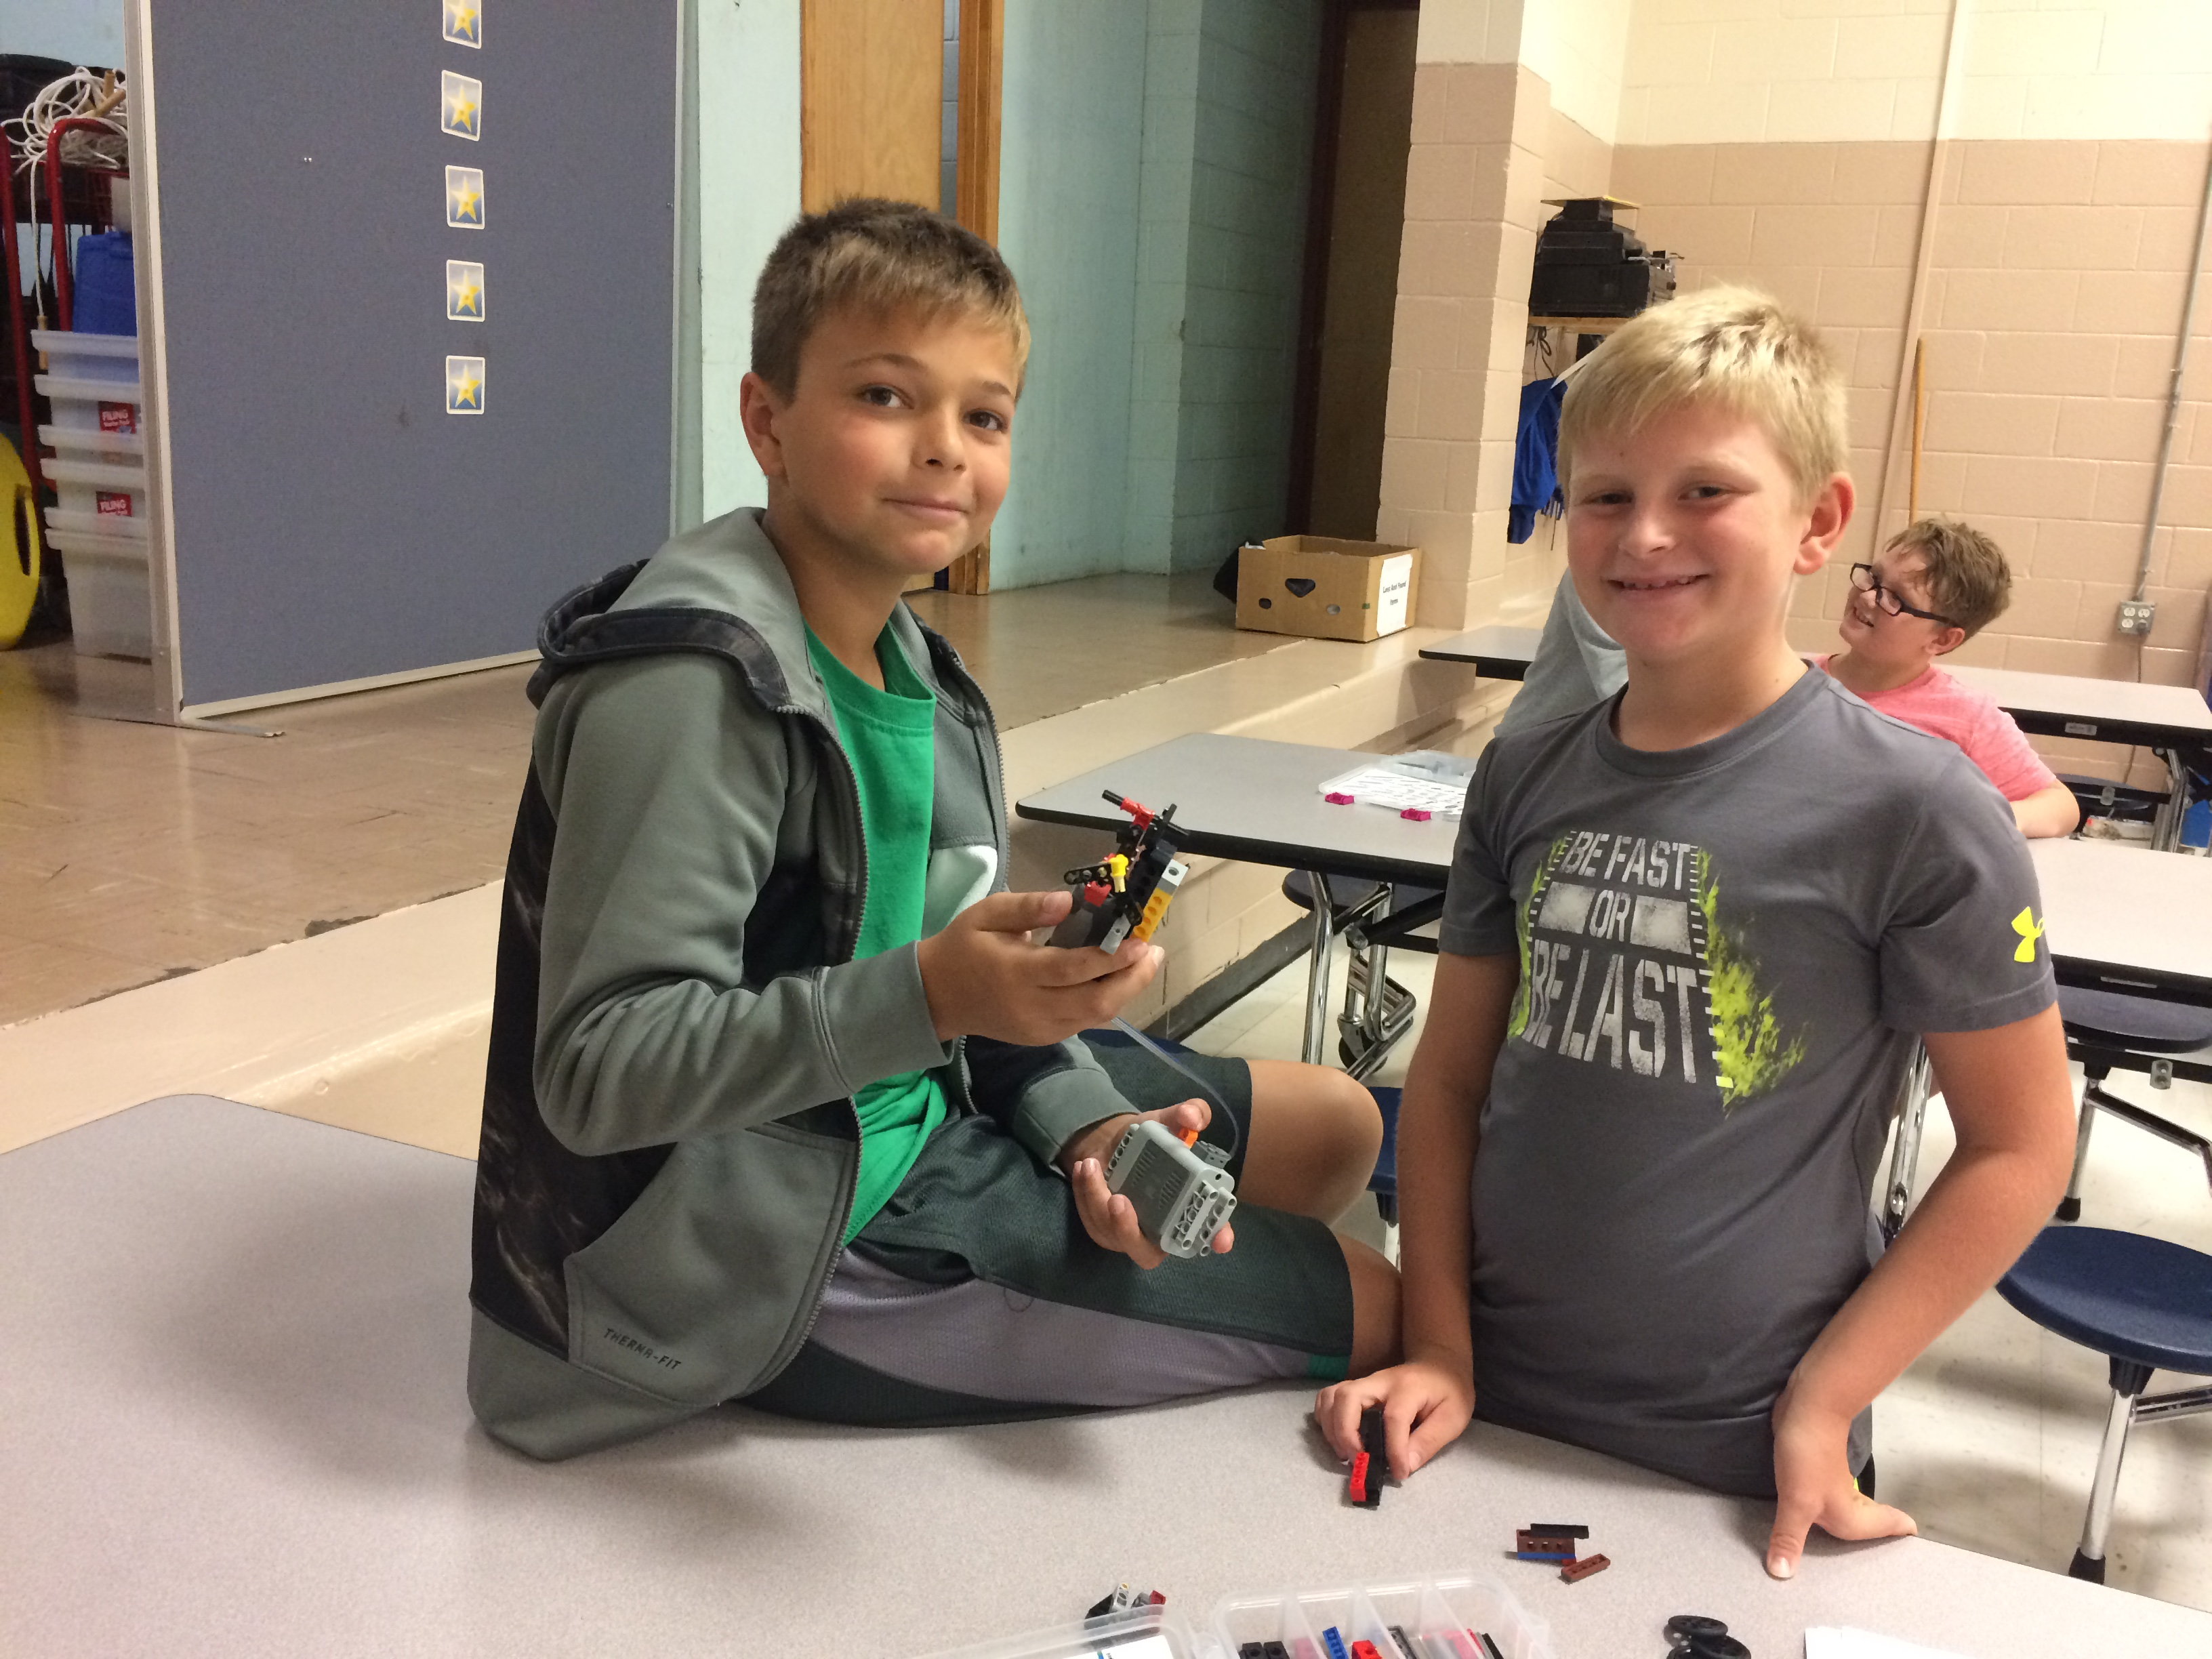 On Wednesday, September 13th, AES & CCMS students had the opportunity to participate in a STEM workshop based upon the use of LEGO® blocks during an outreach program with Bricks 4 Kidz.